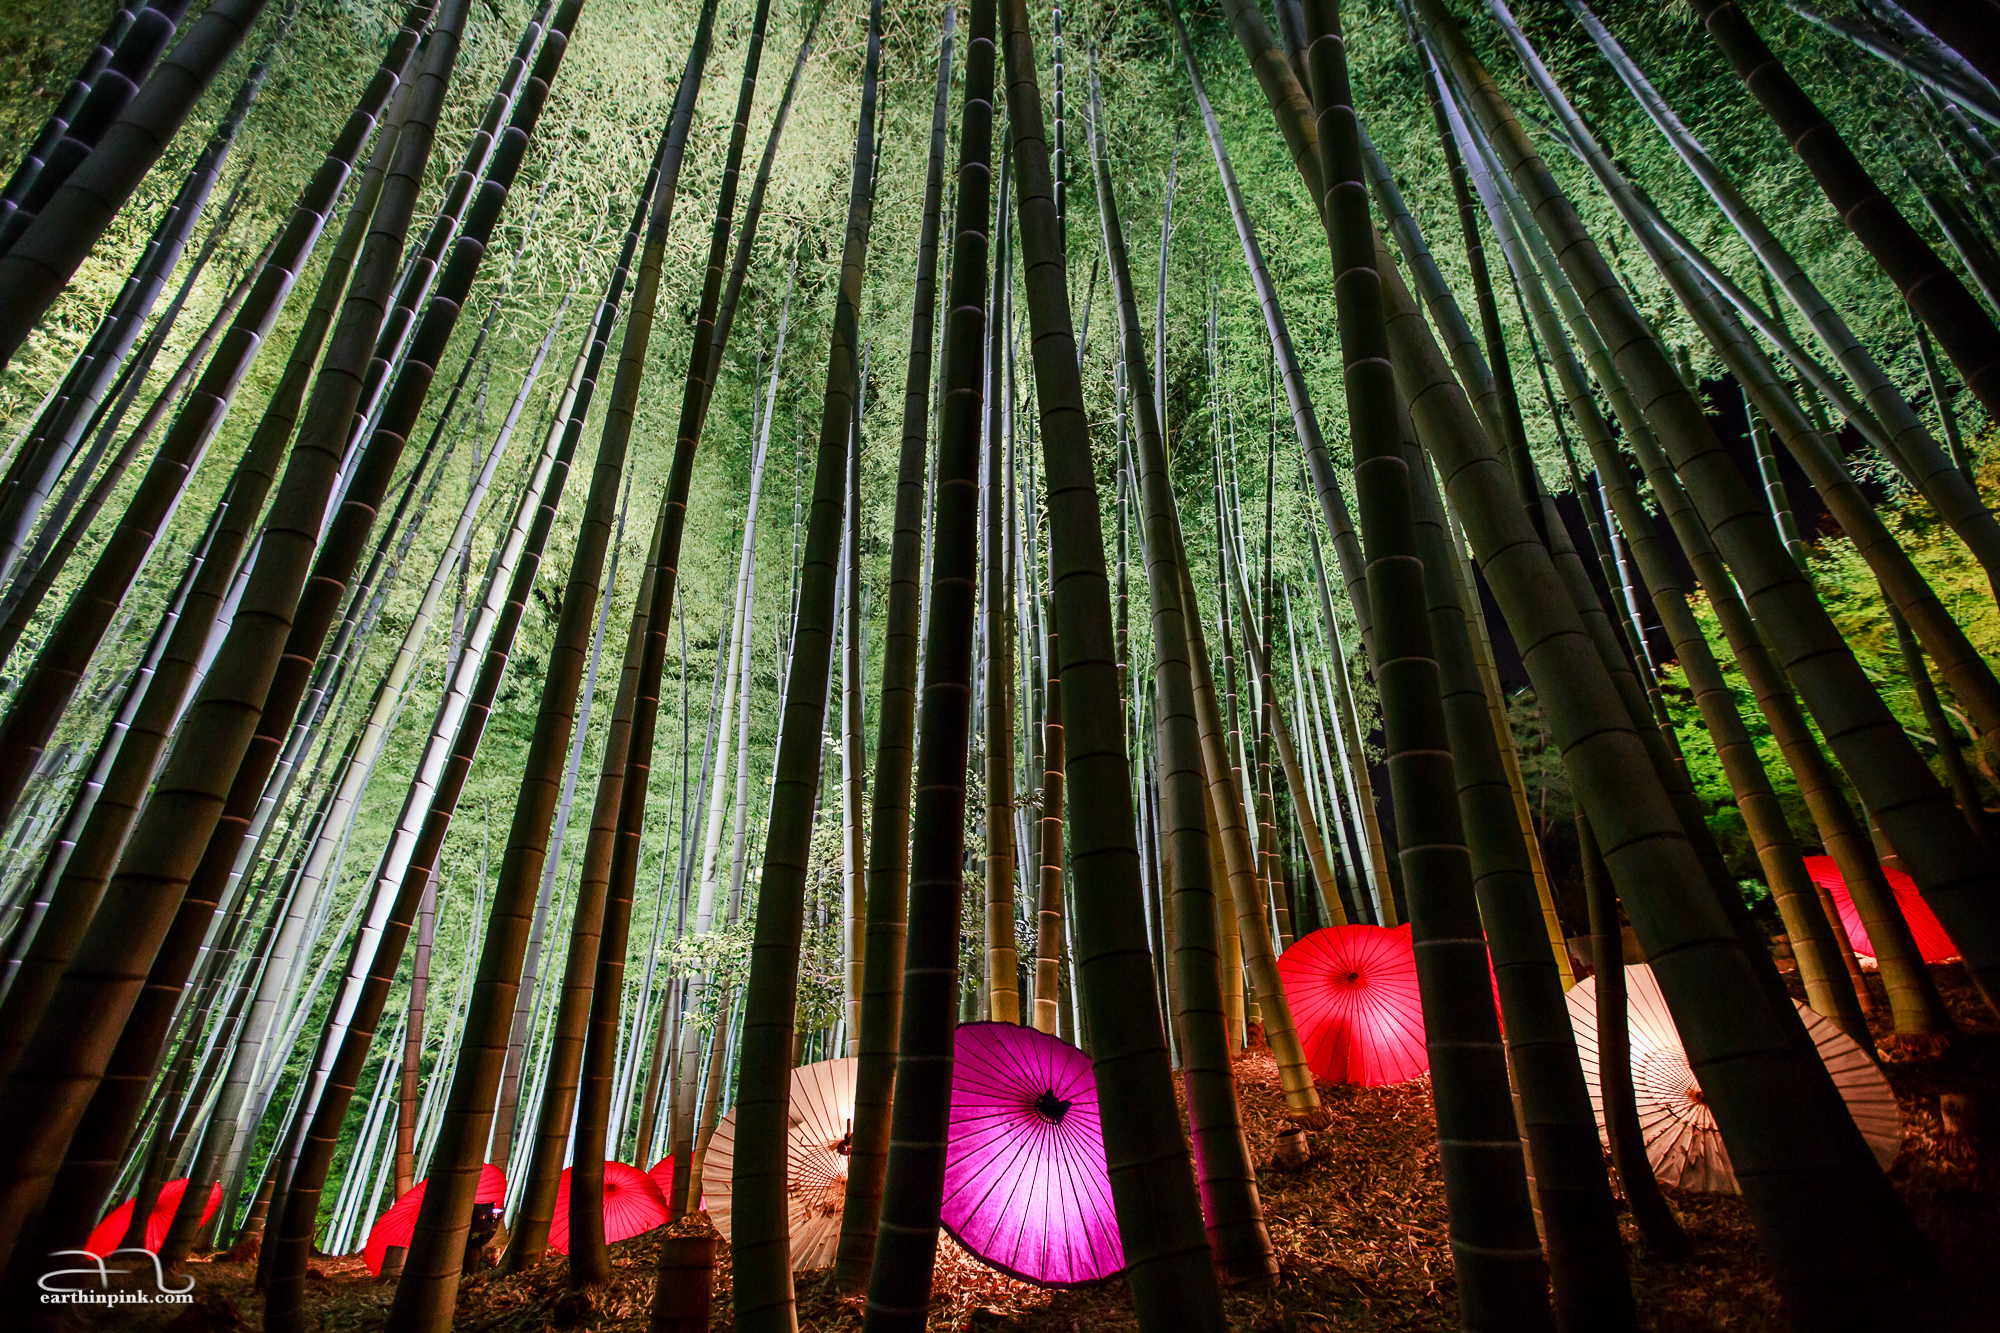 Illuminated umbrellas scattered throughout the bamboo forest at Kodaiji temple.